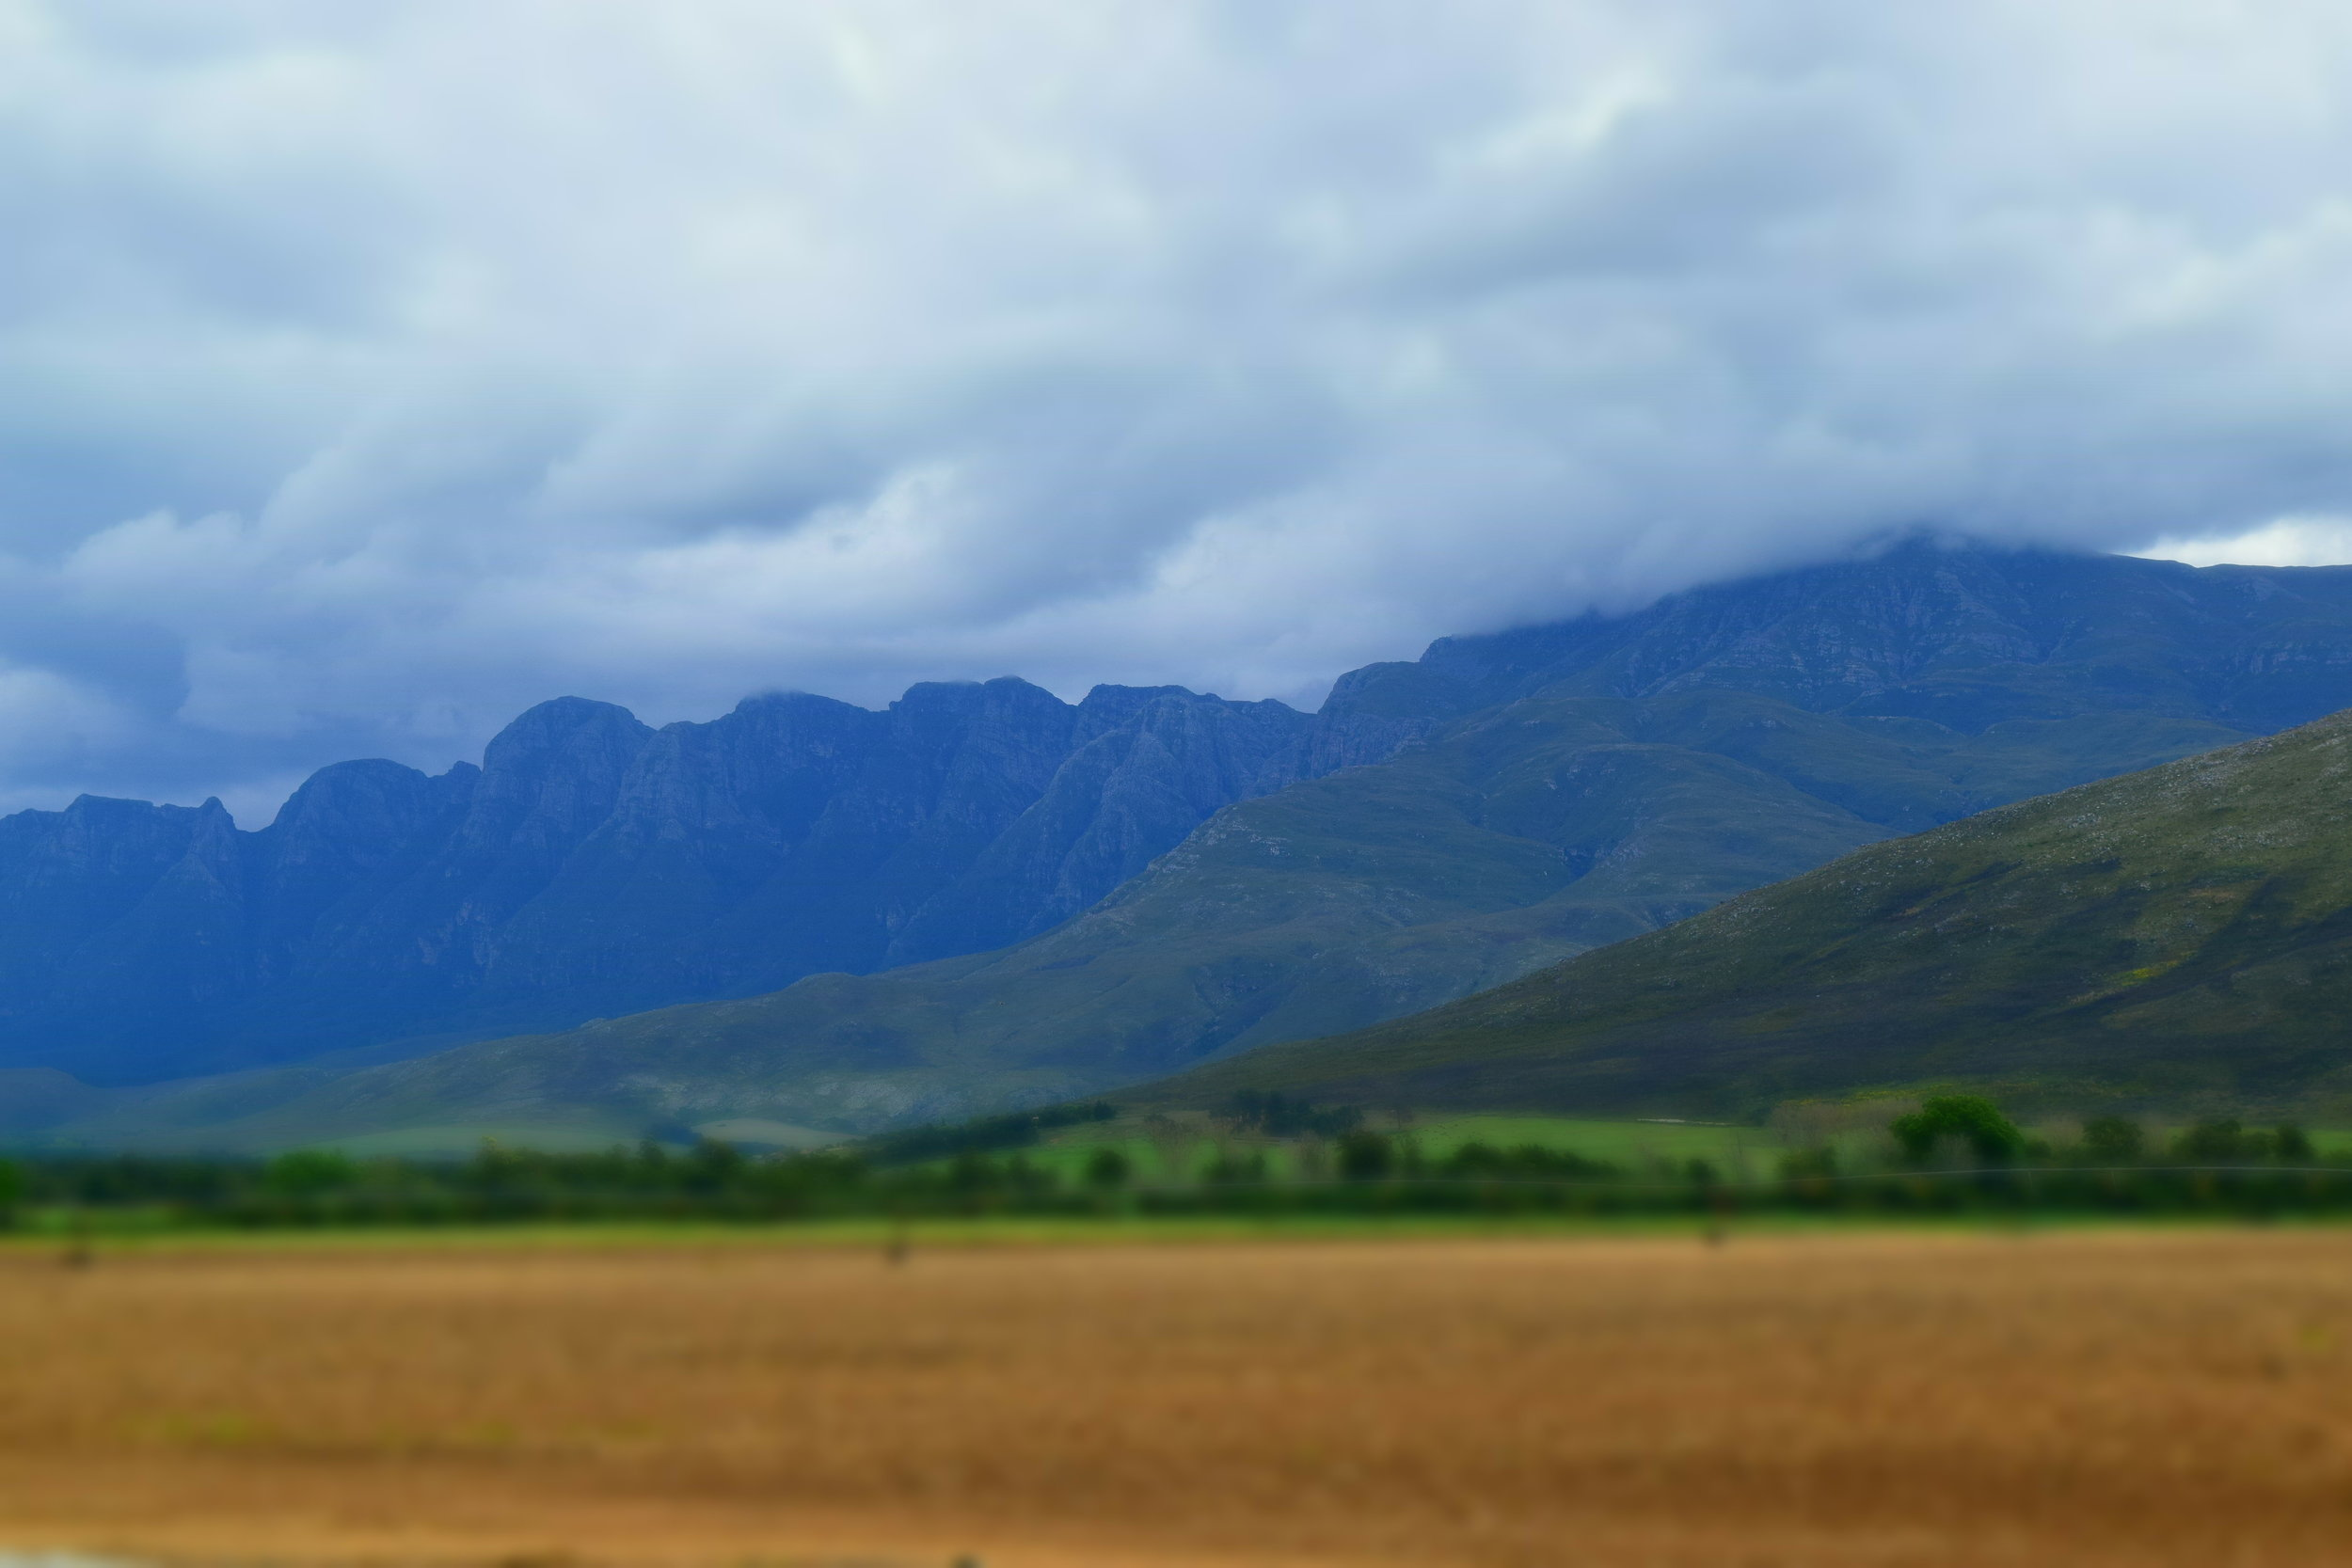 Copy of South African landscape